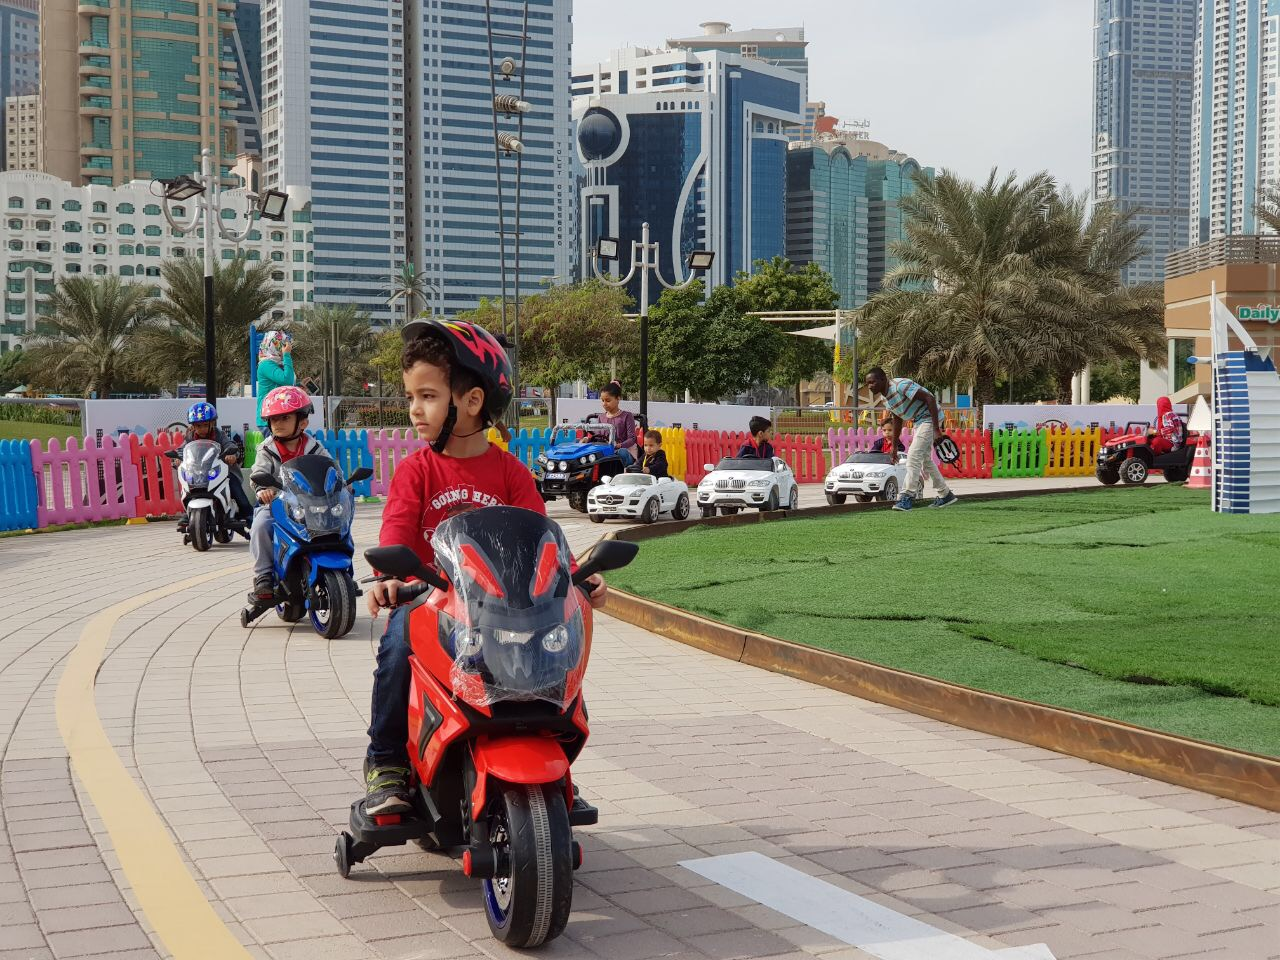 children learn road safety skills while having fun at al majaz waterfront2